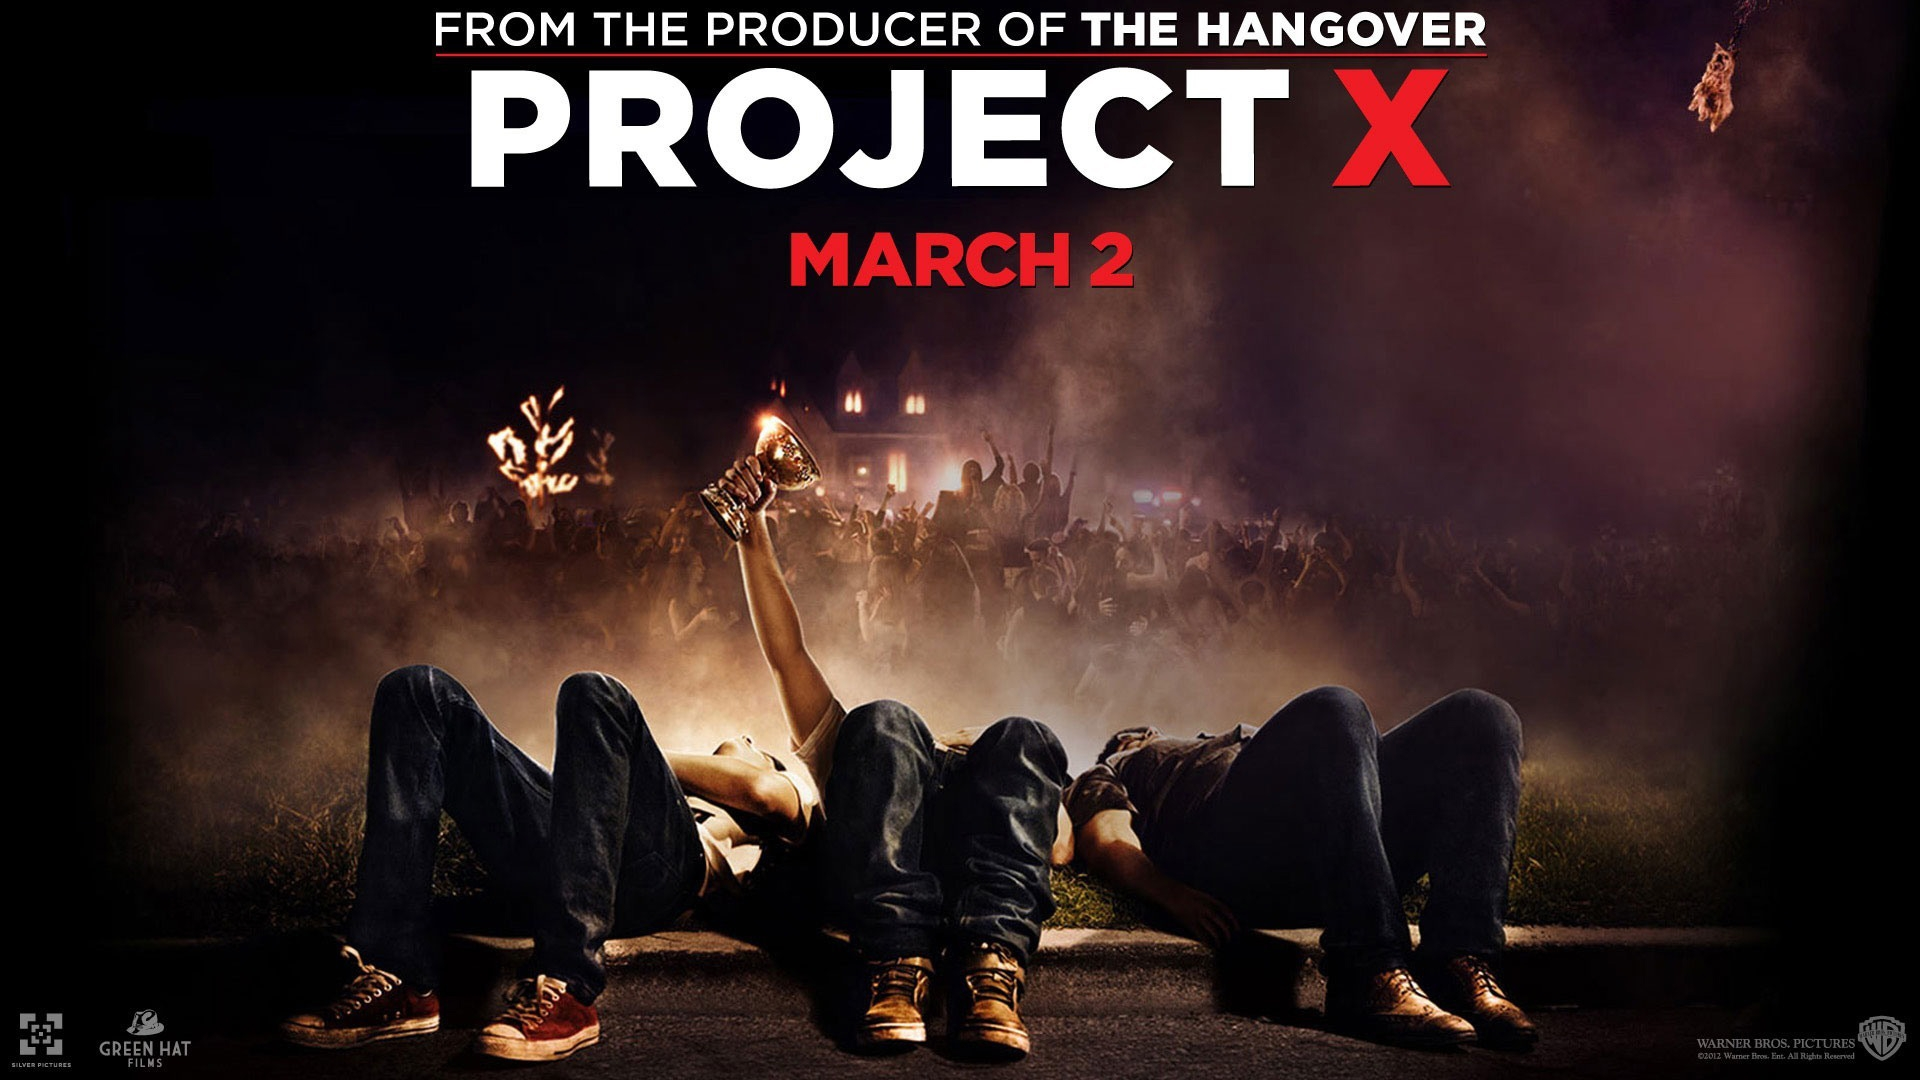 Project X Movie wallpaper - 854349